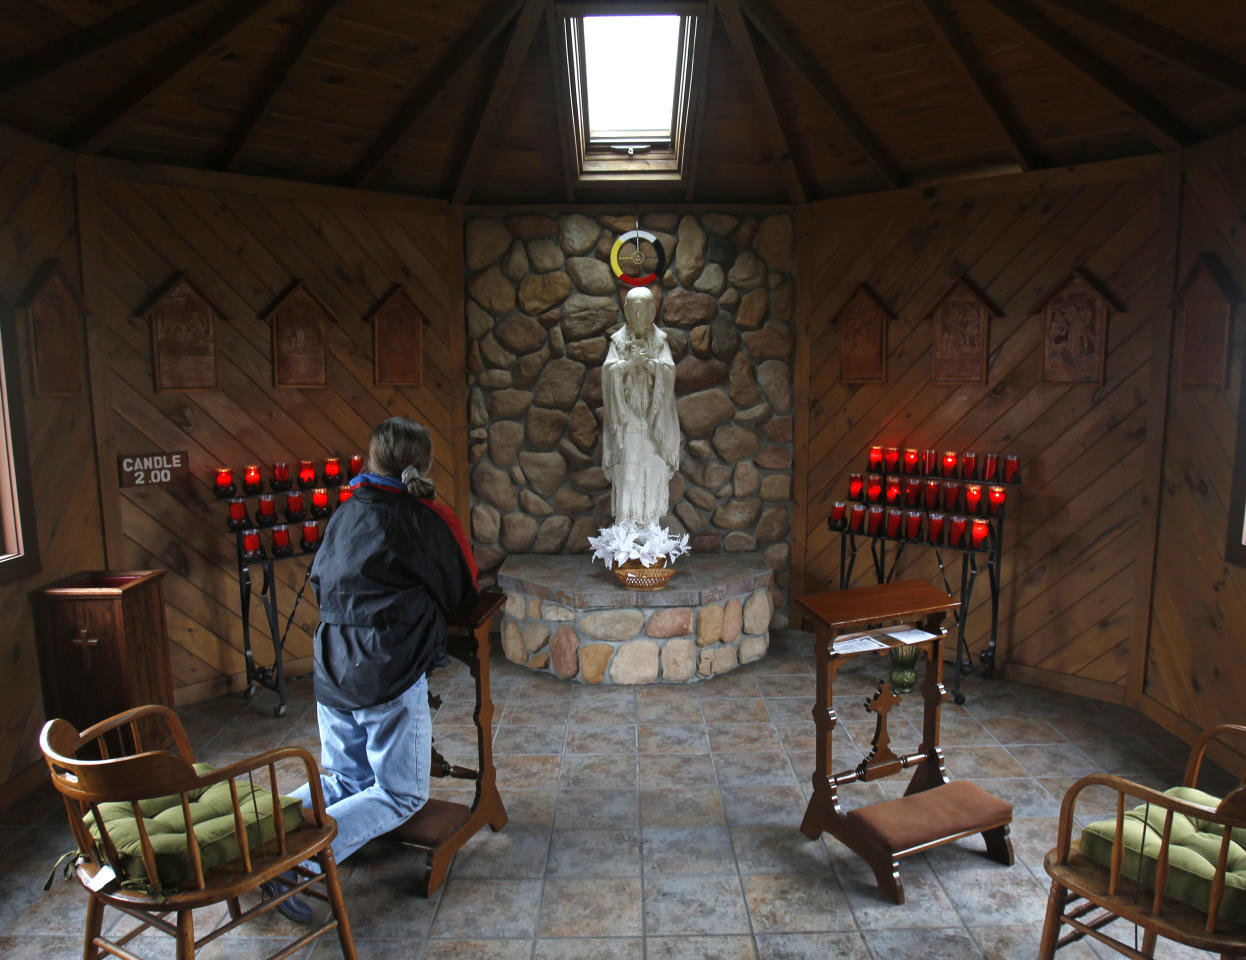 in a Wednesday, Dec. 21, 2011 photo, Mary Ann Delany of Amsterdam, N.Y., says a prayer in front of a statue of the the Blessed Kateri Tekakwitha at the National Kateri Shrine and Indian Museum in Fonda, N.Y. Tekakwitha, who will be canonized next year, was a Native American baptized in 1676 in the Mohawk Valley. She fled to a mission in Canada after being scorned and threatened in her home village near what is now the village of Fonda. (AP Photo/Mike Groll)